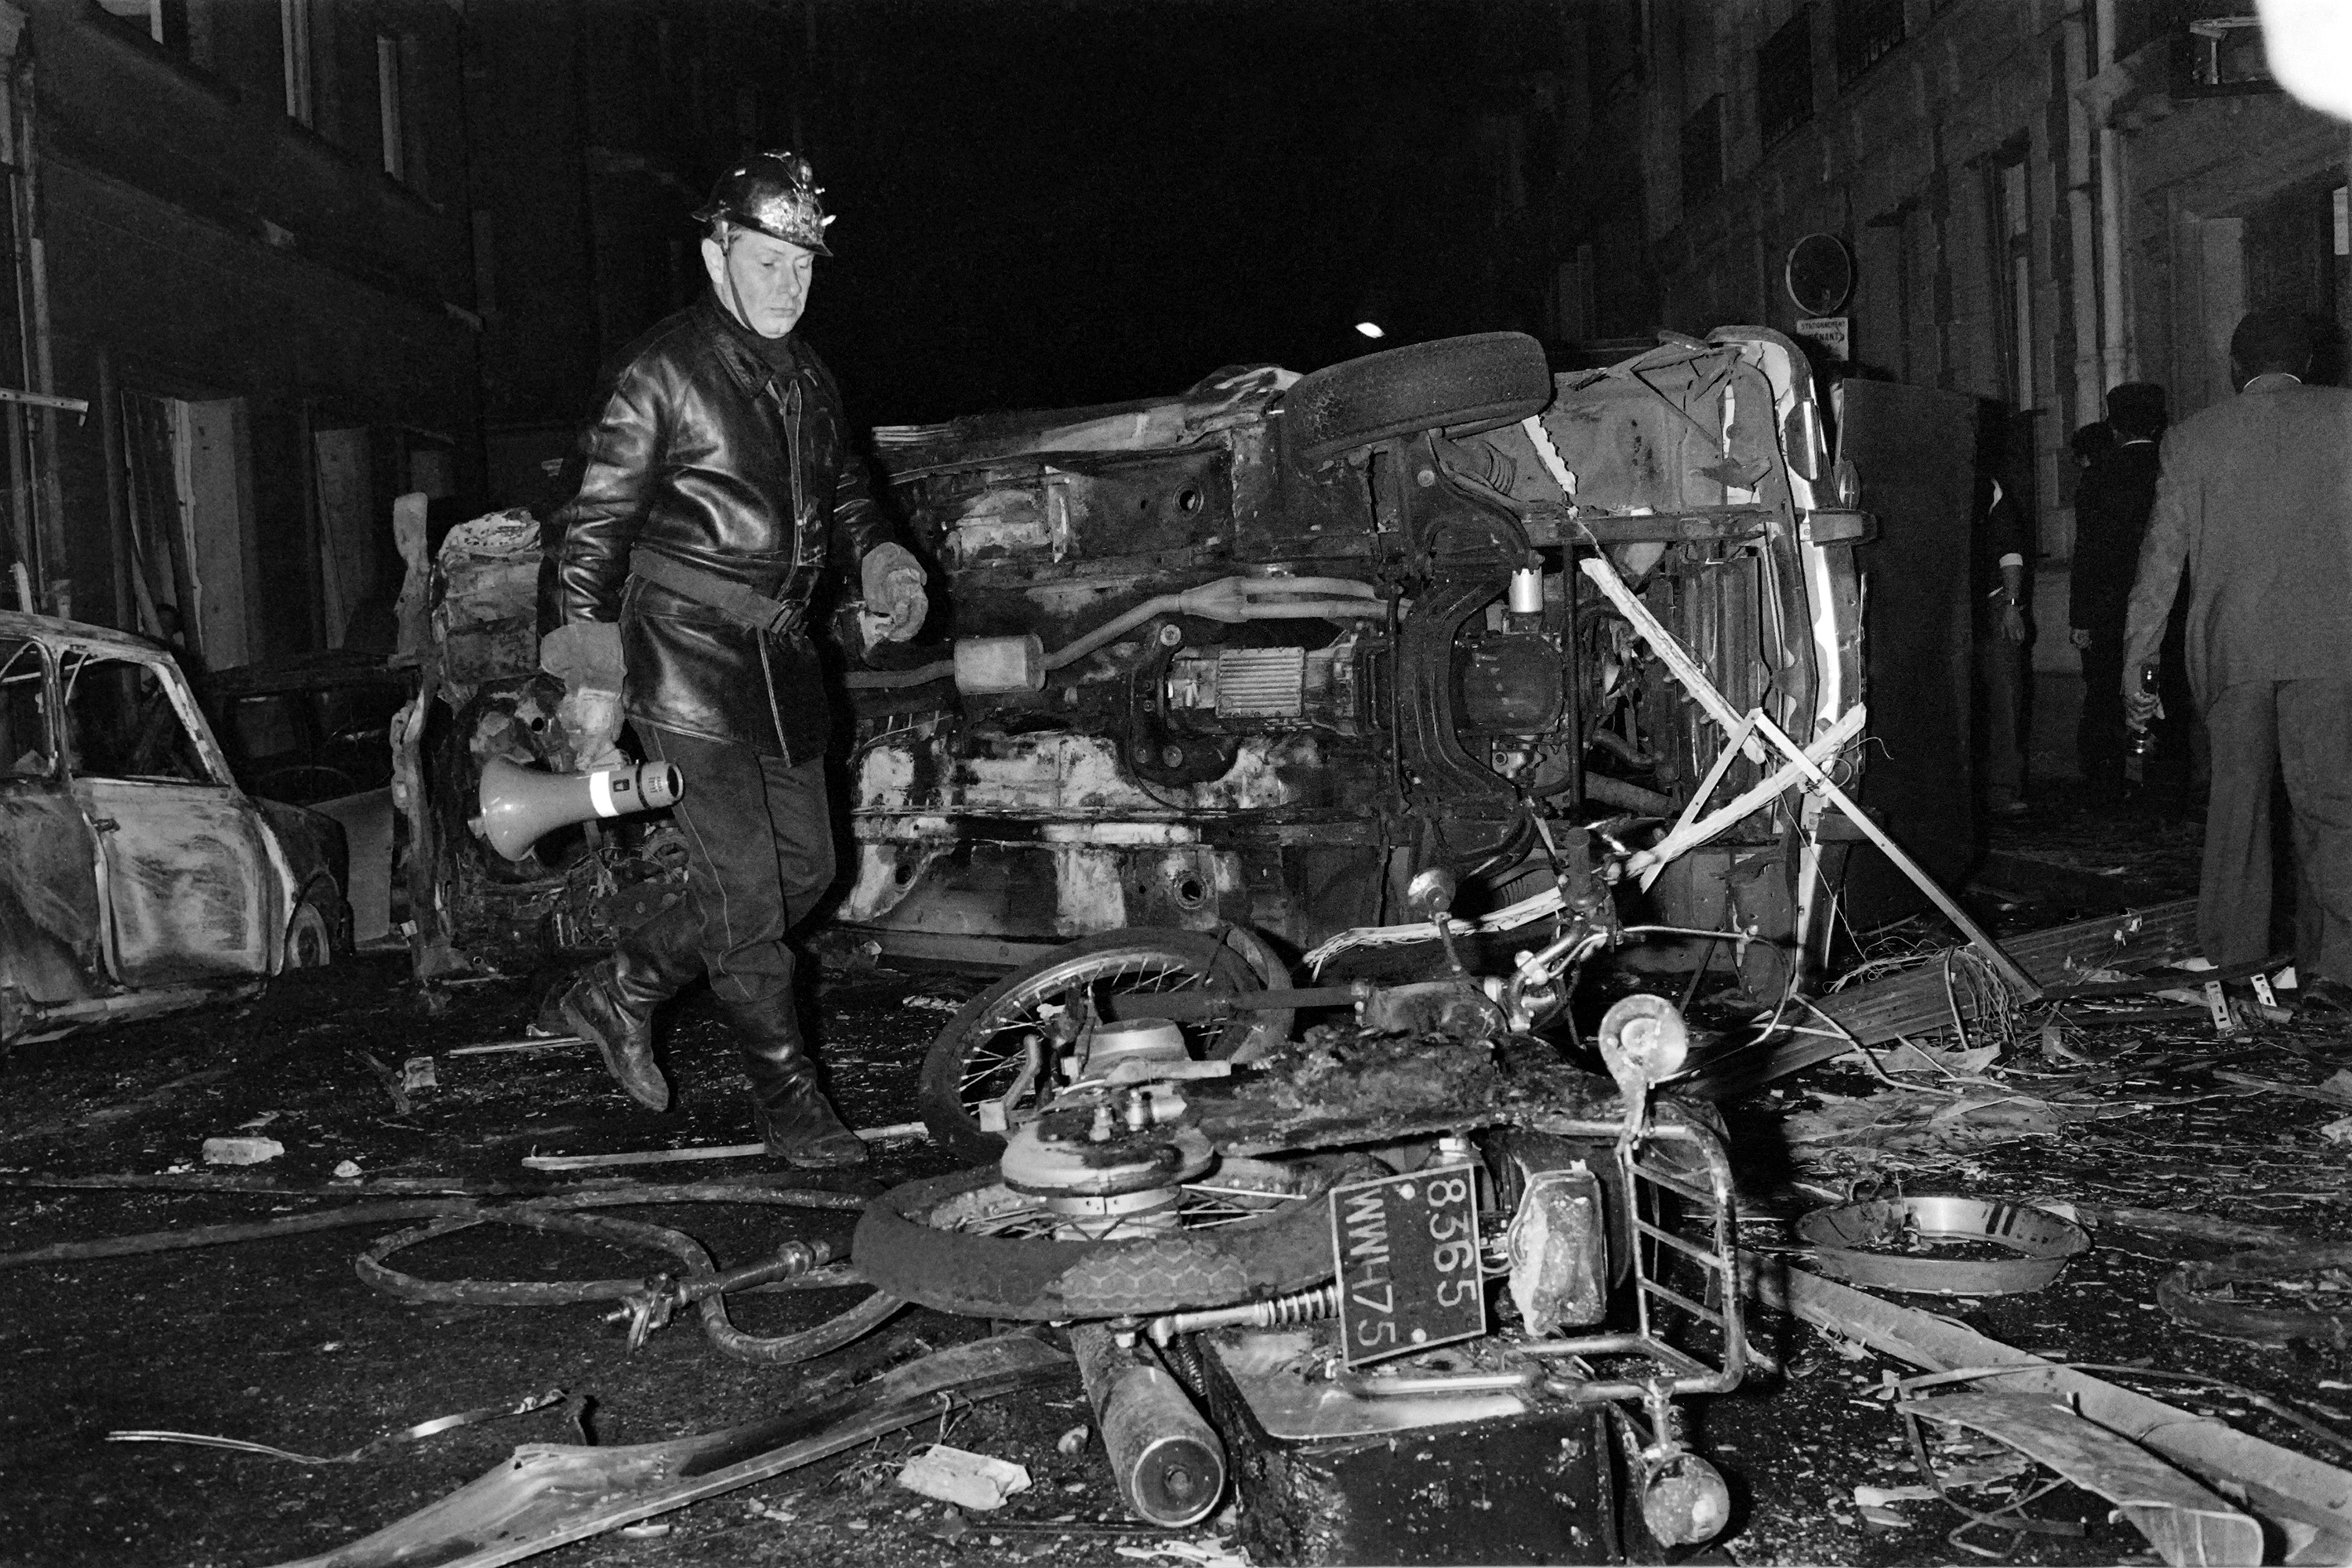 The bombing of the synagogue on Rue Copernic in Paris on Oct. 3, 1980, killed four people. (Georges Bendrihem/AFP/Getty)